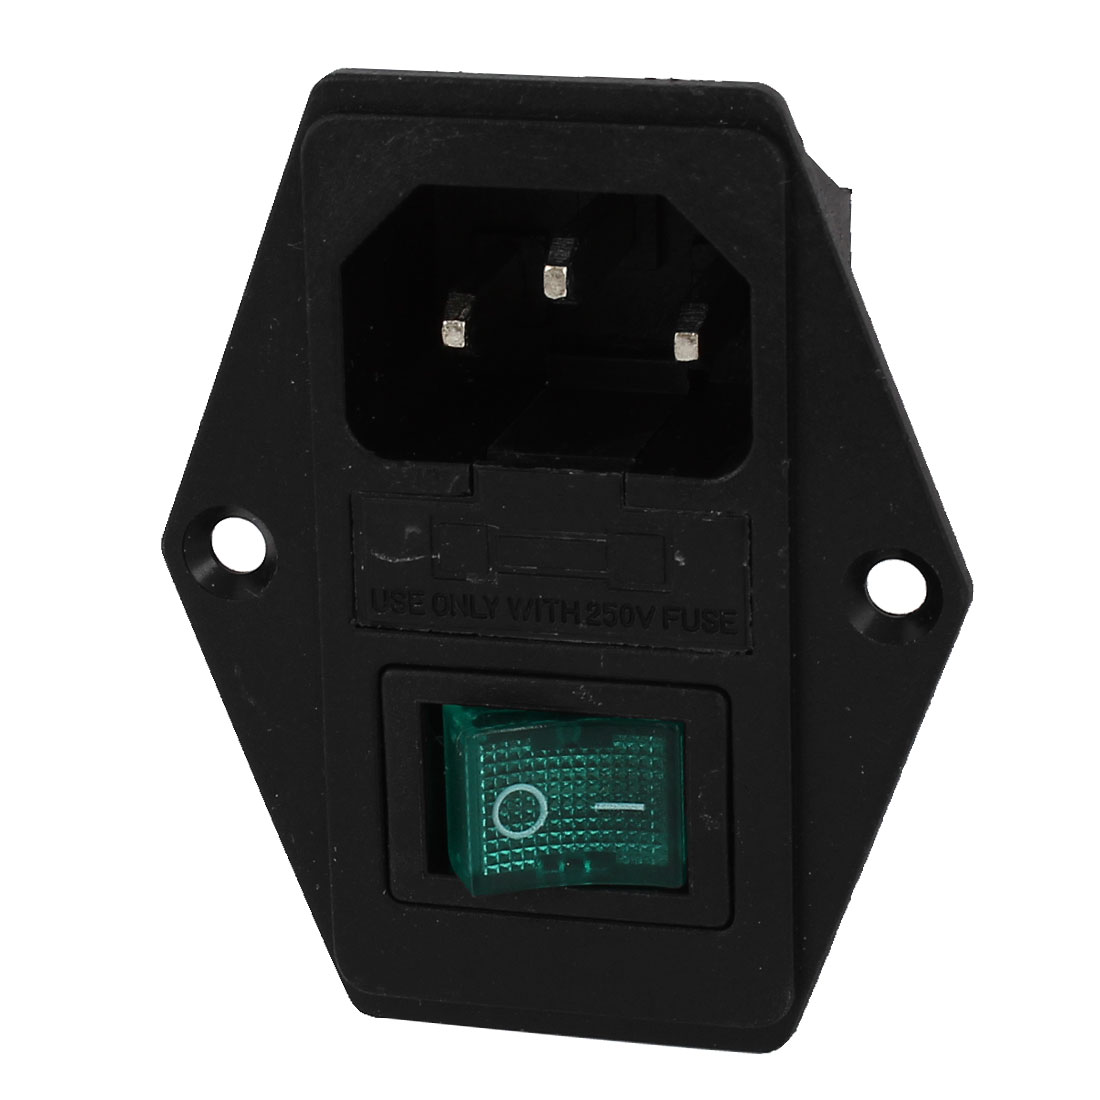 AC 250V 15A Plastic Housing IEC320 C14 Inlet I/O Button Power Socket w Fuseholder